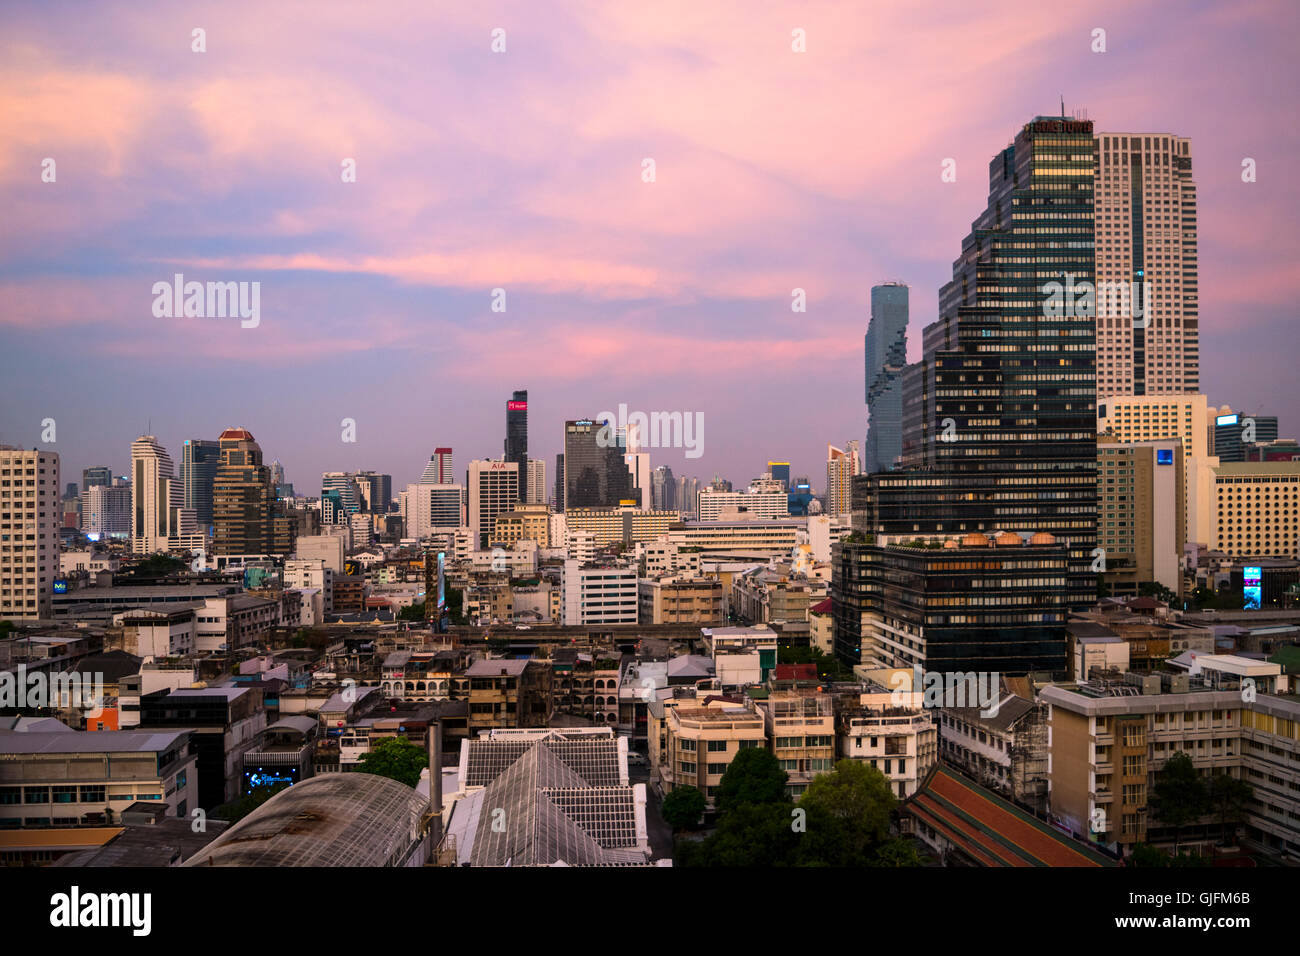 Sunset Bangkok, Tailandia, descripción Foto de stock